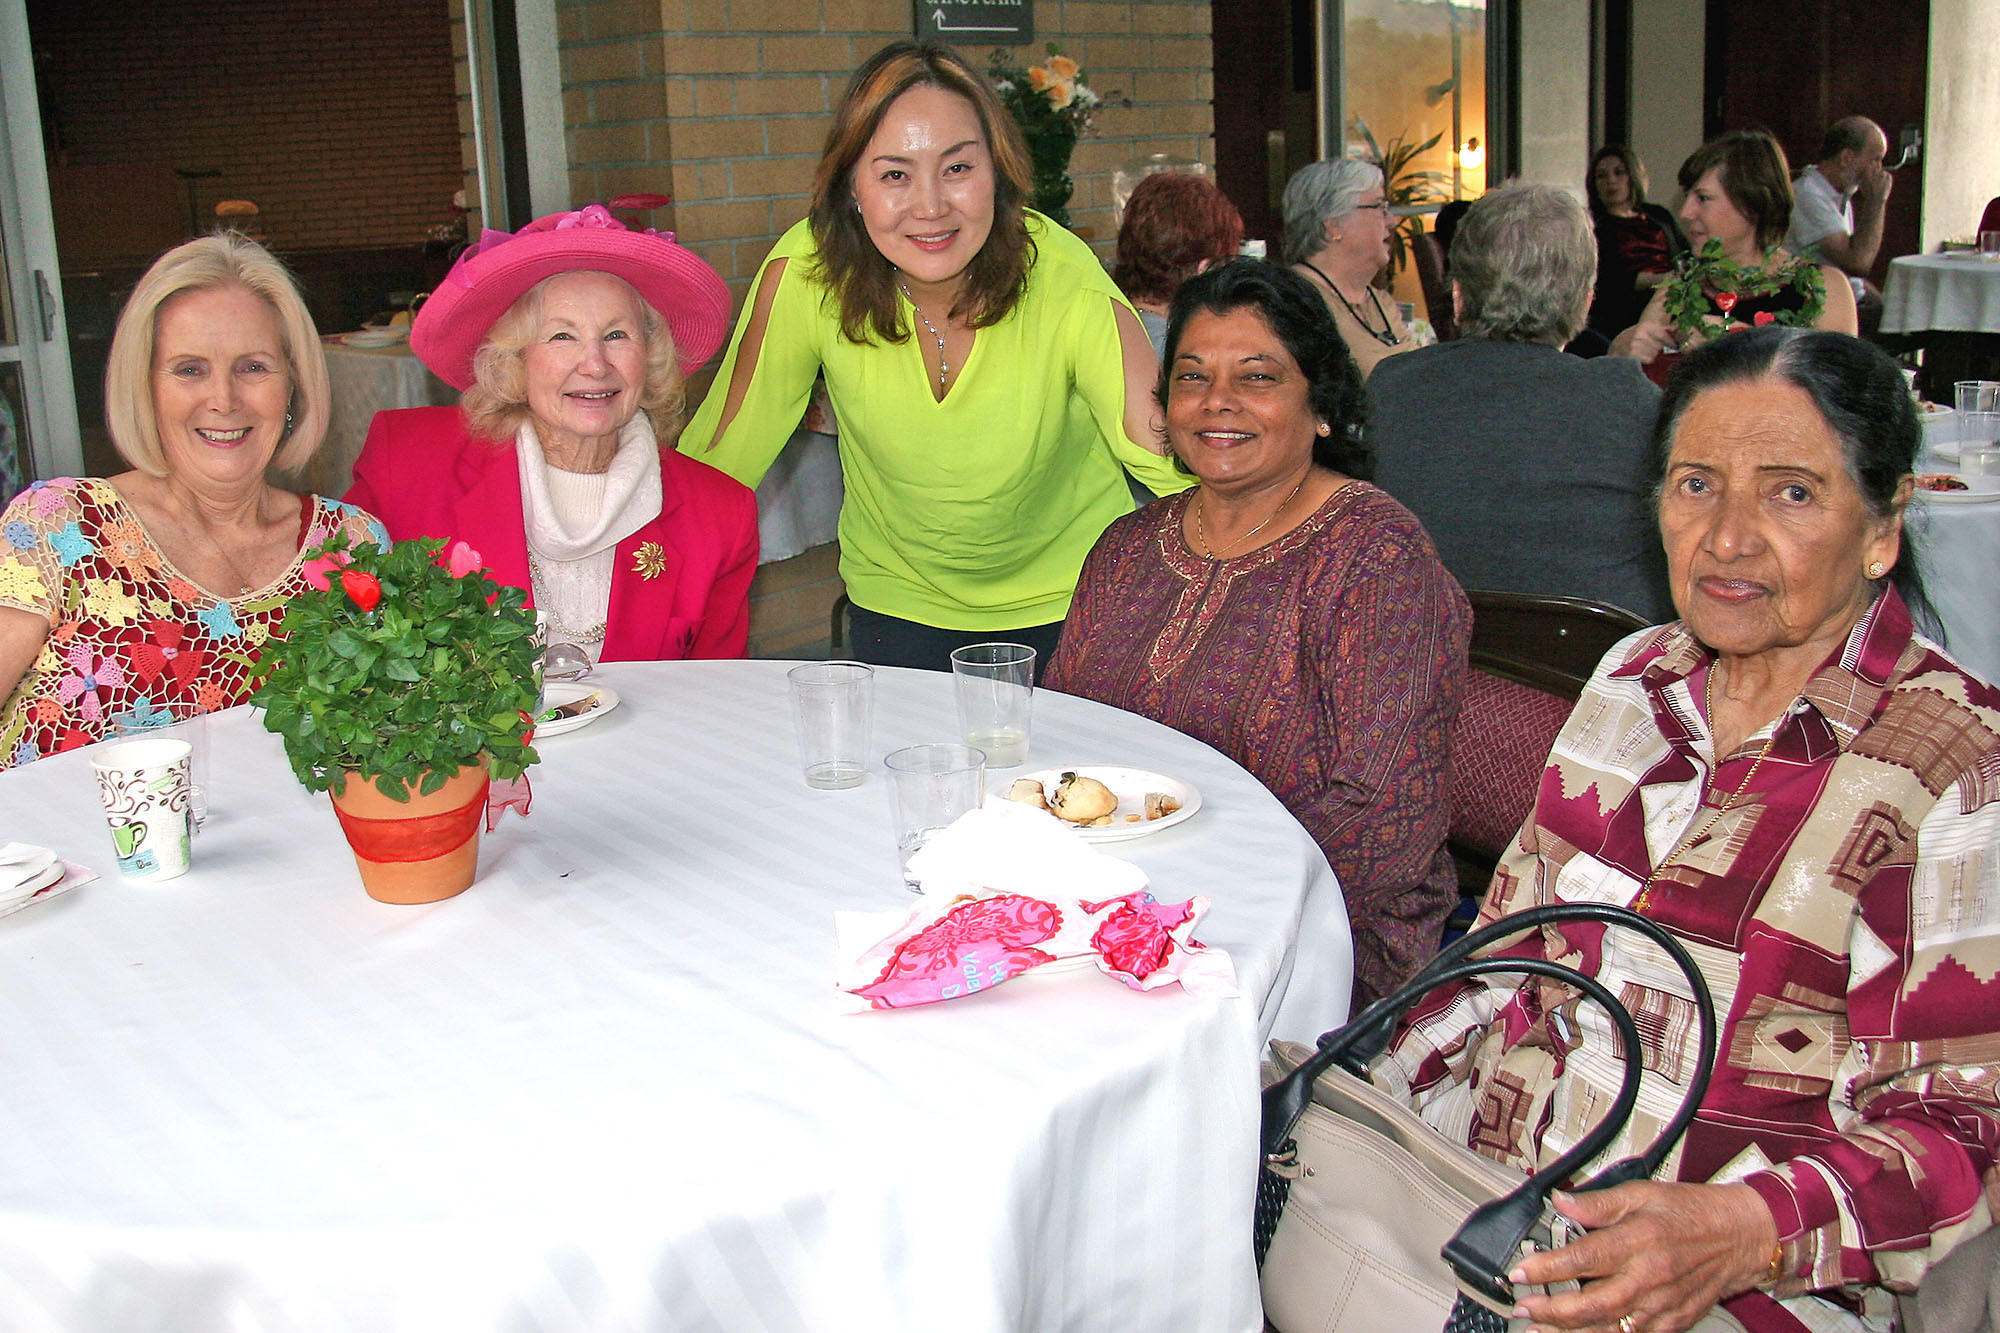 Ramona Teichert, Betty Cady, Pastor Elaine Cho, Esther Ariathurai and Ranji Ariathurai were among the guests who enjoyed a full English tea following the Valentine's Concert at La Cañada United Methodist Church last Saturday.